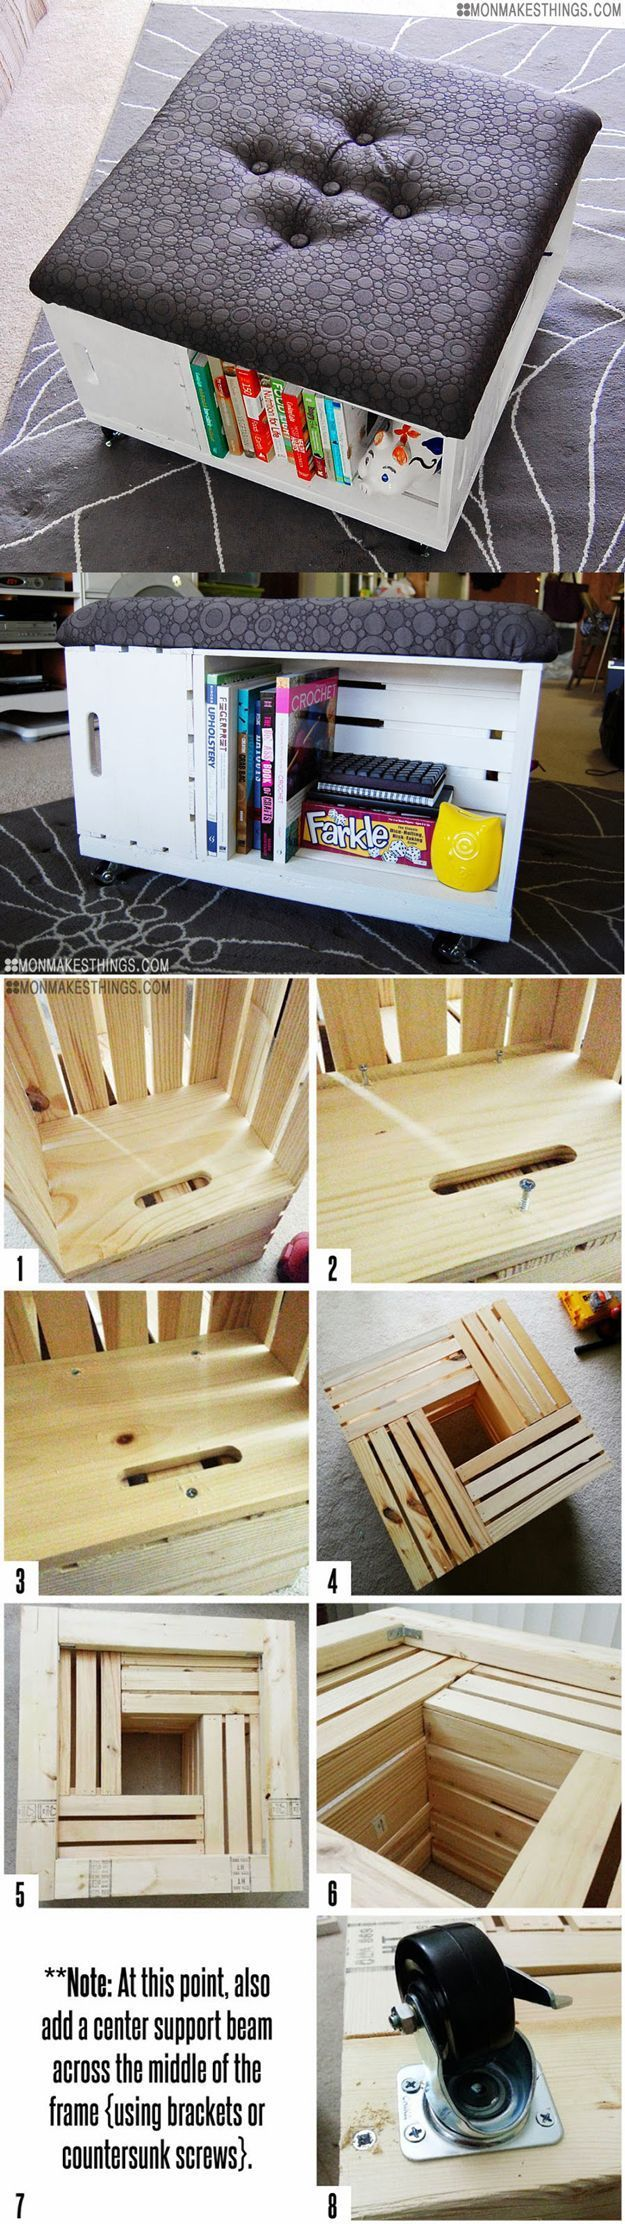 DIY Storage Ottoman | Simple and Fun DIY Home Decor Tutorial for Renters by DIY Ready at  http://diyready.com/diy-room-decor-ideas-for-renters/